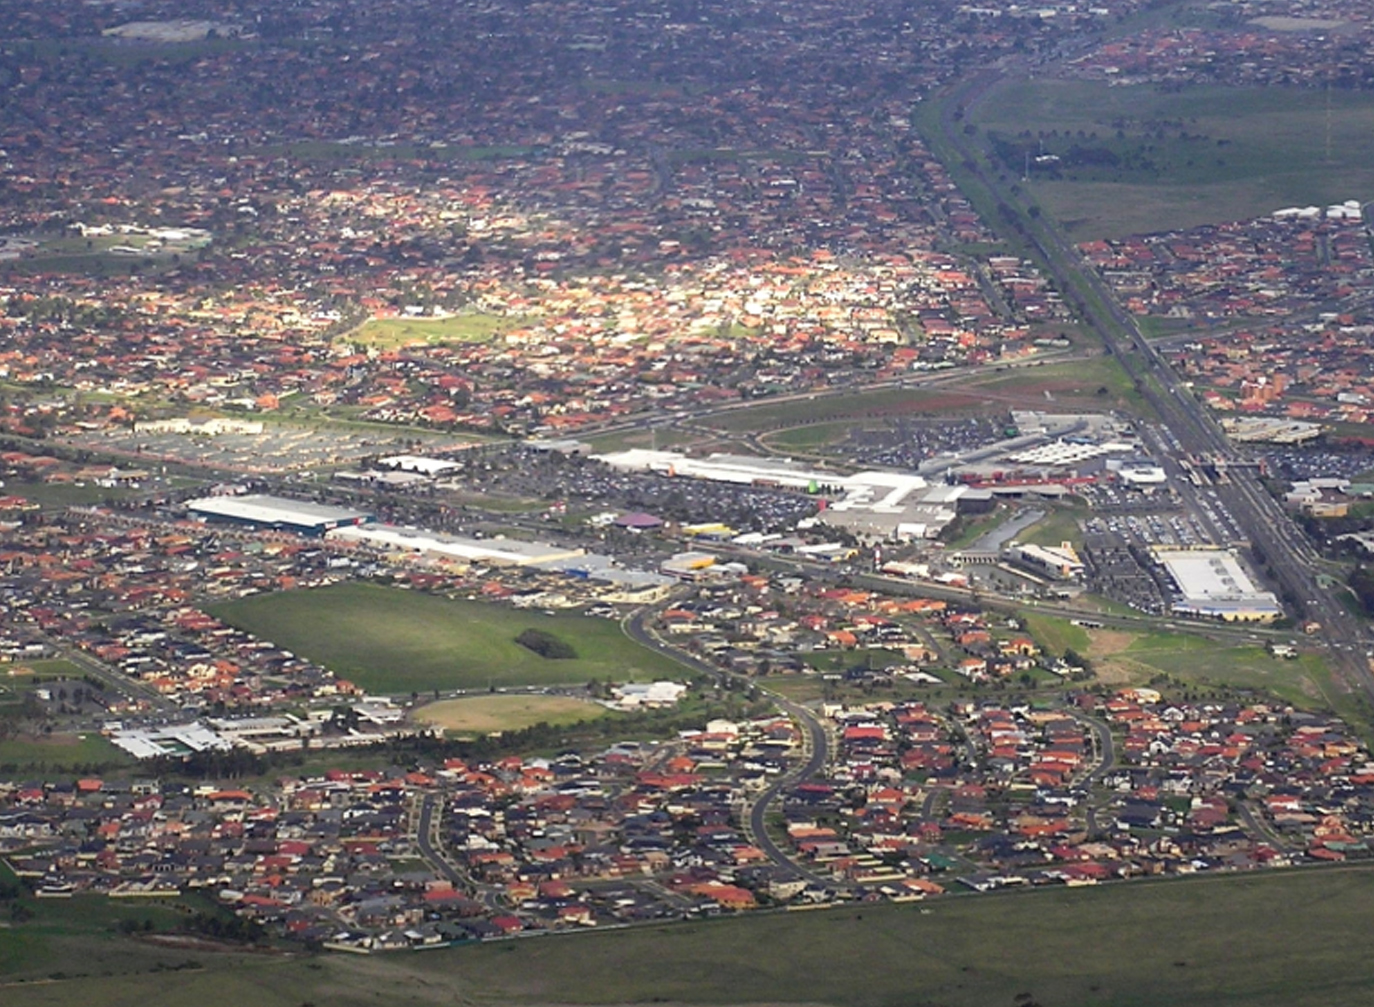 Melbourne upcoming suburbs